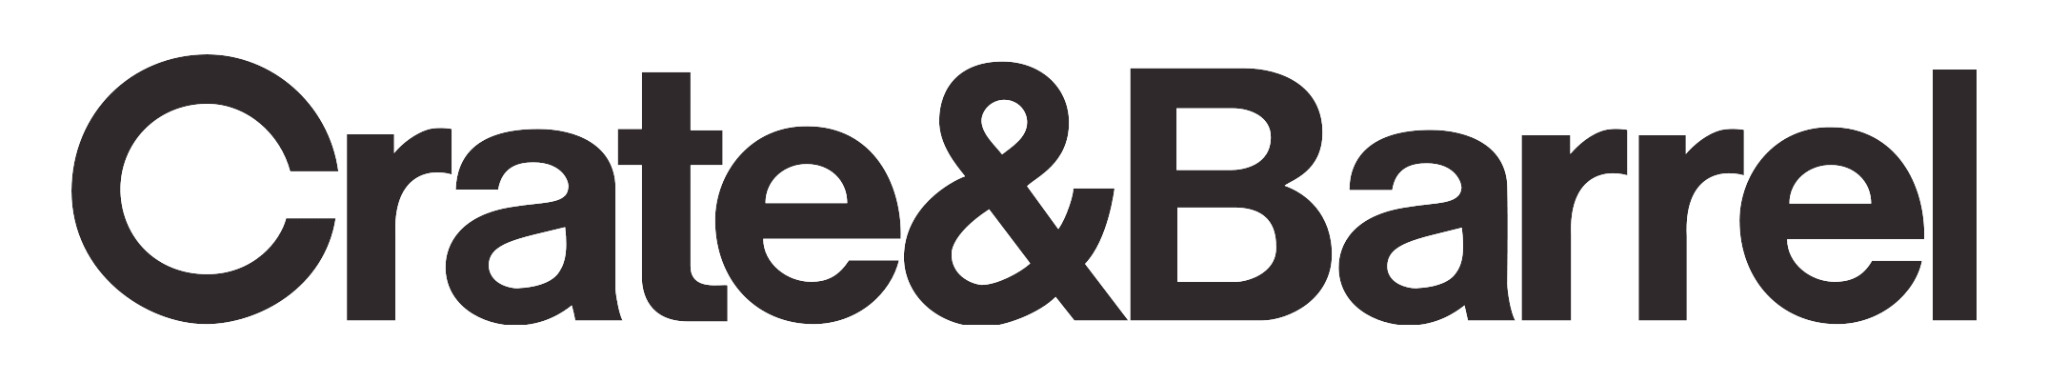 Crate And Barrel Free Shipping Code 2011